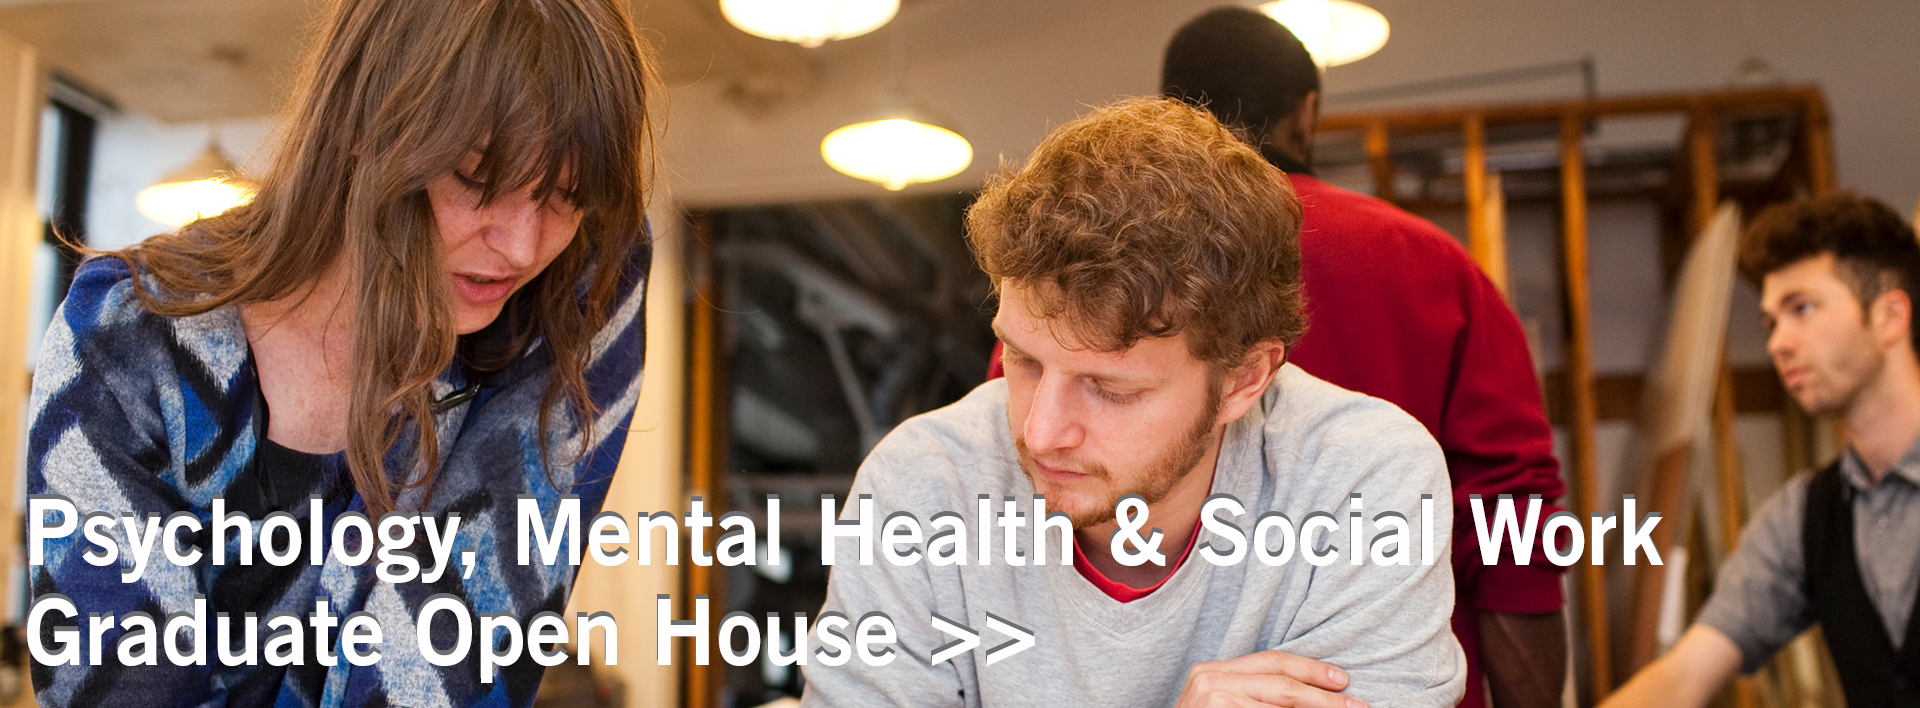 Psychology, Mental Health & Social Work Graduate Open House banner